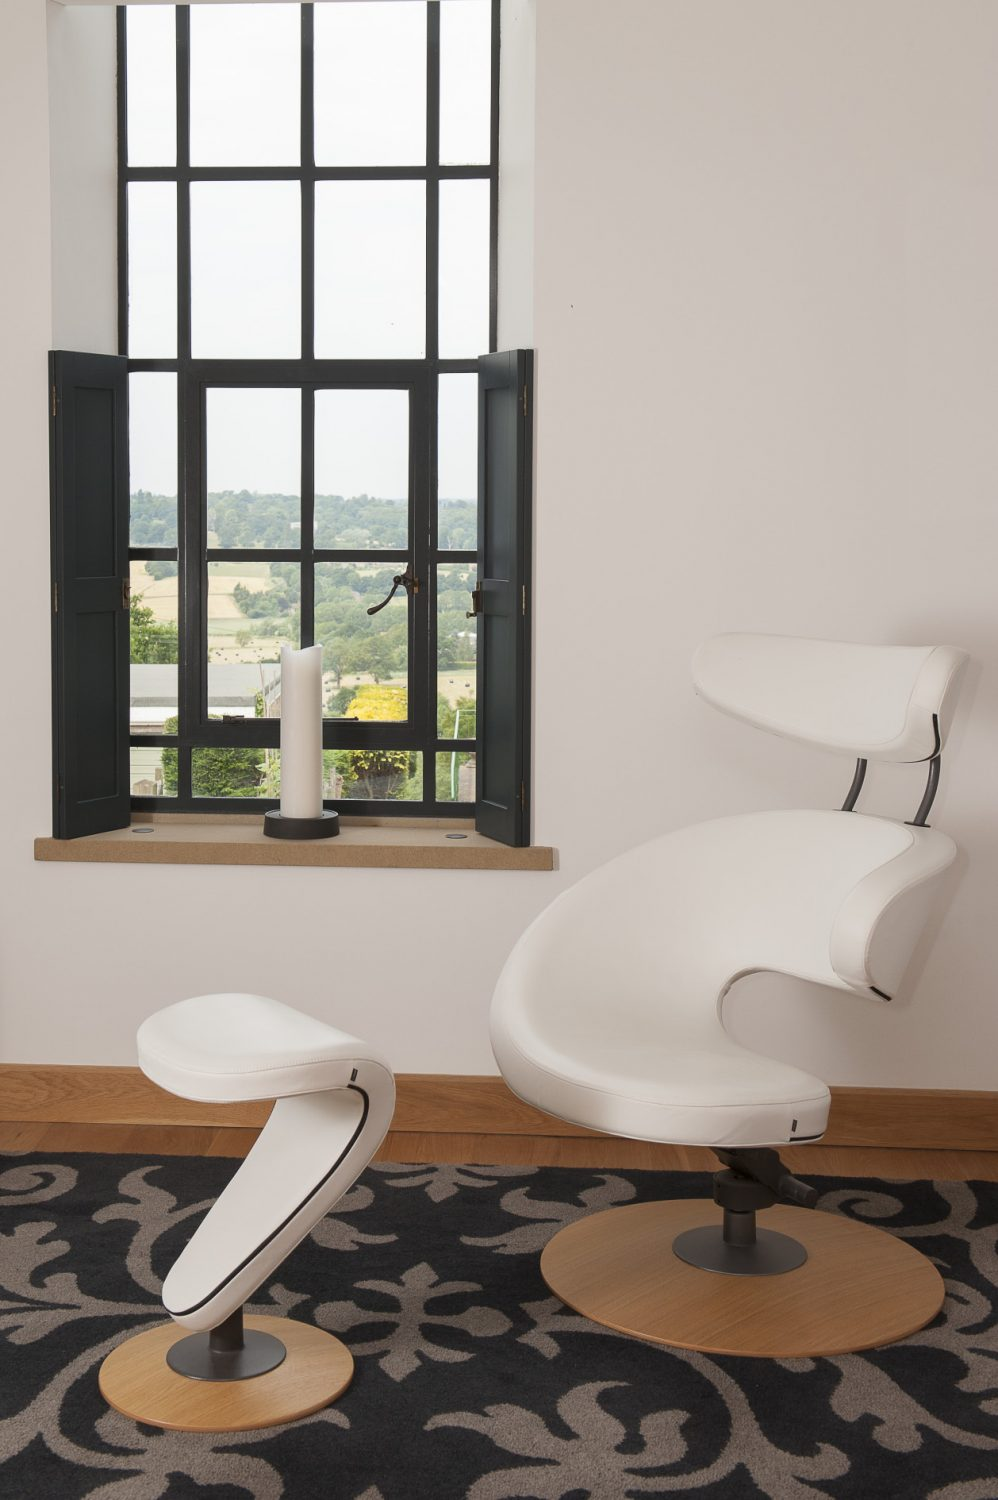 A truly superb white leather Varier 'Orange Peel' chair where the couple can take it in turns to relax and enjoy the stunning westerly view down from the top of Goudhurst hill